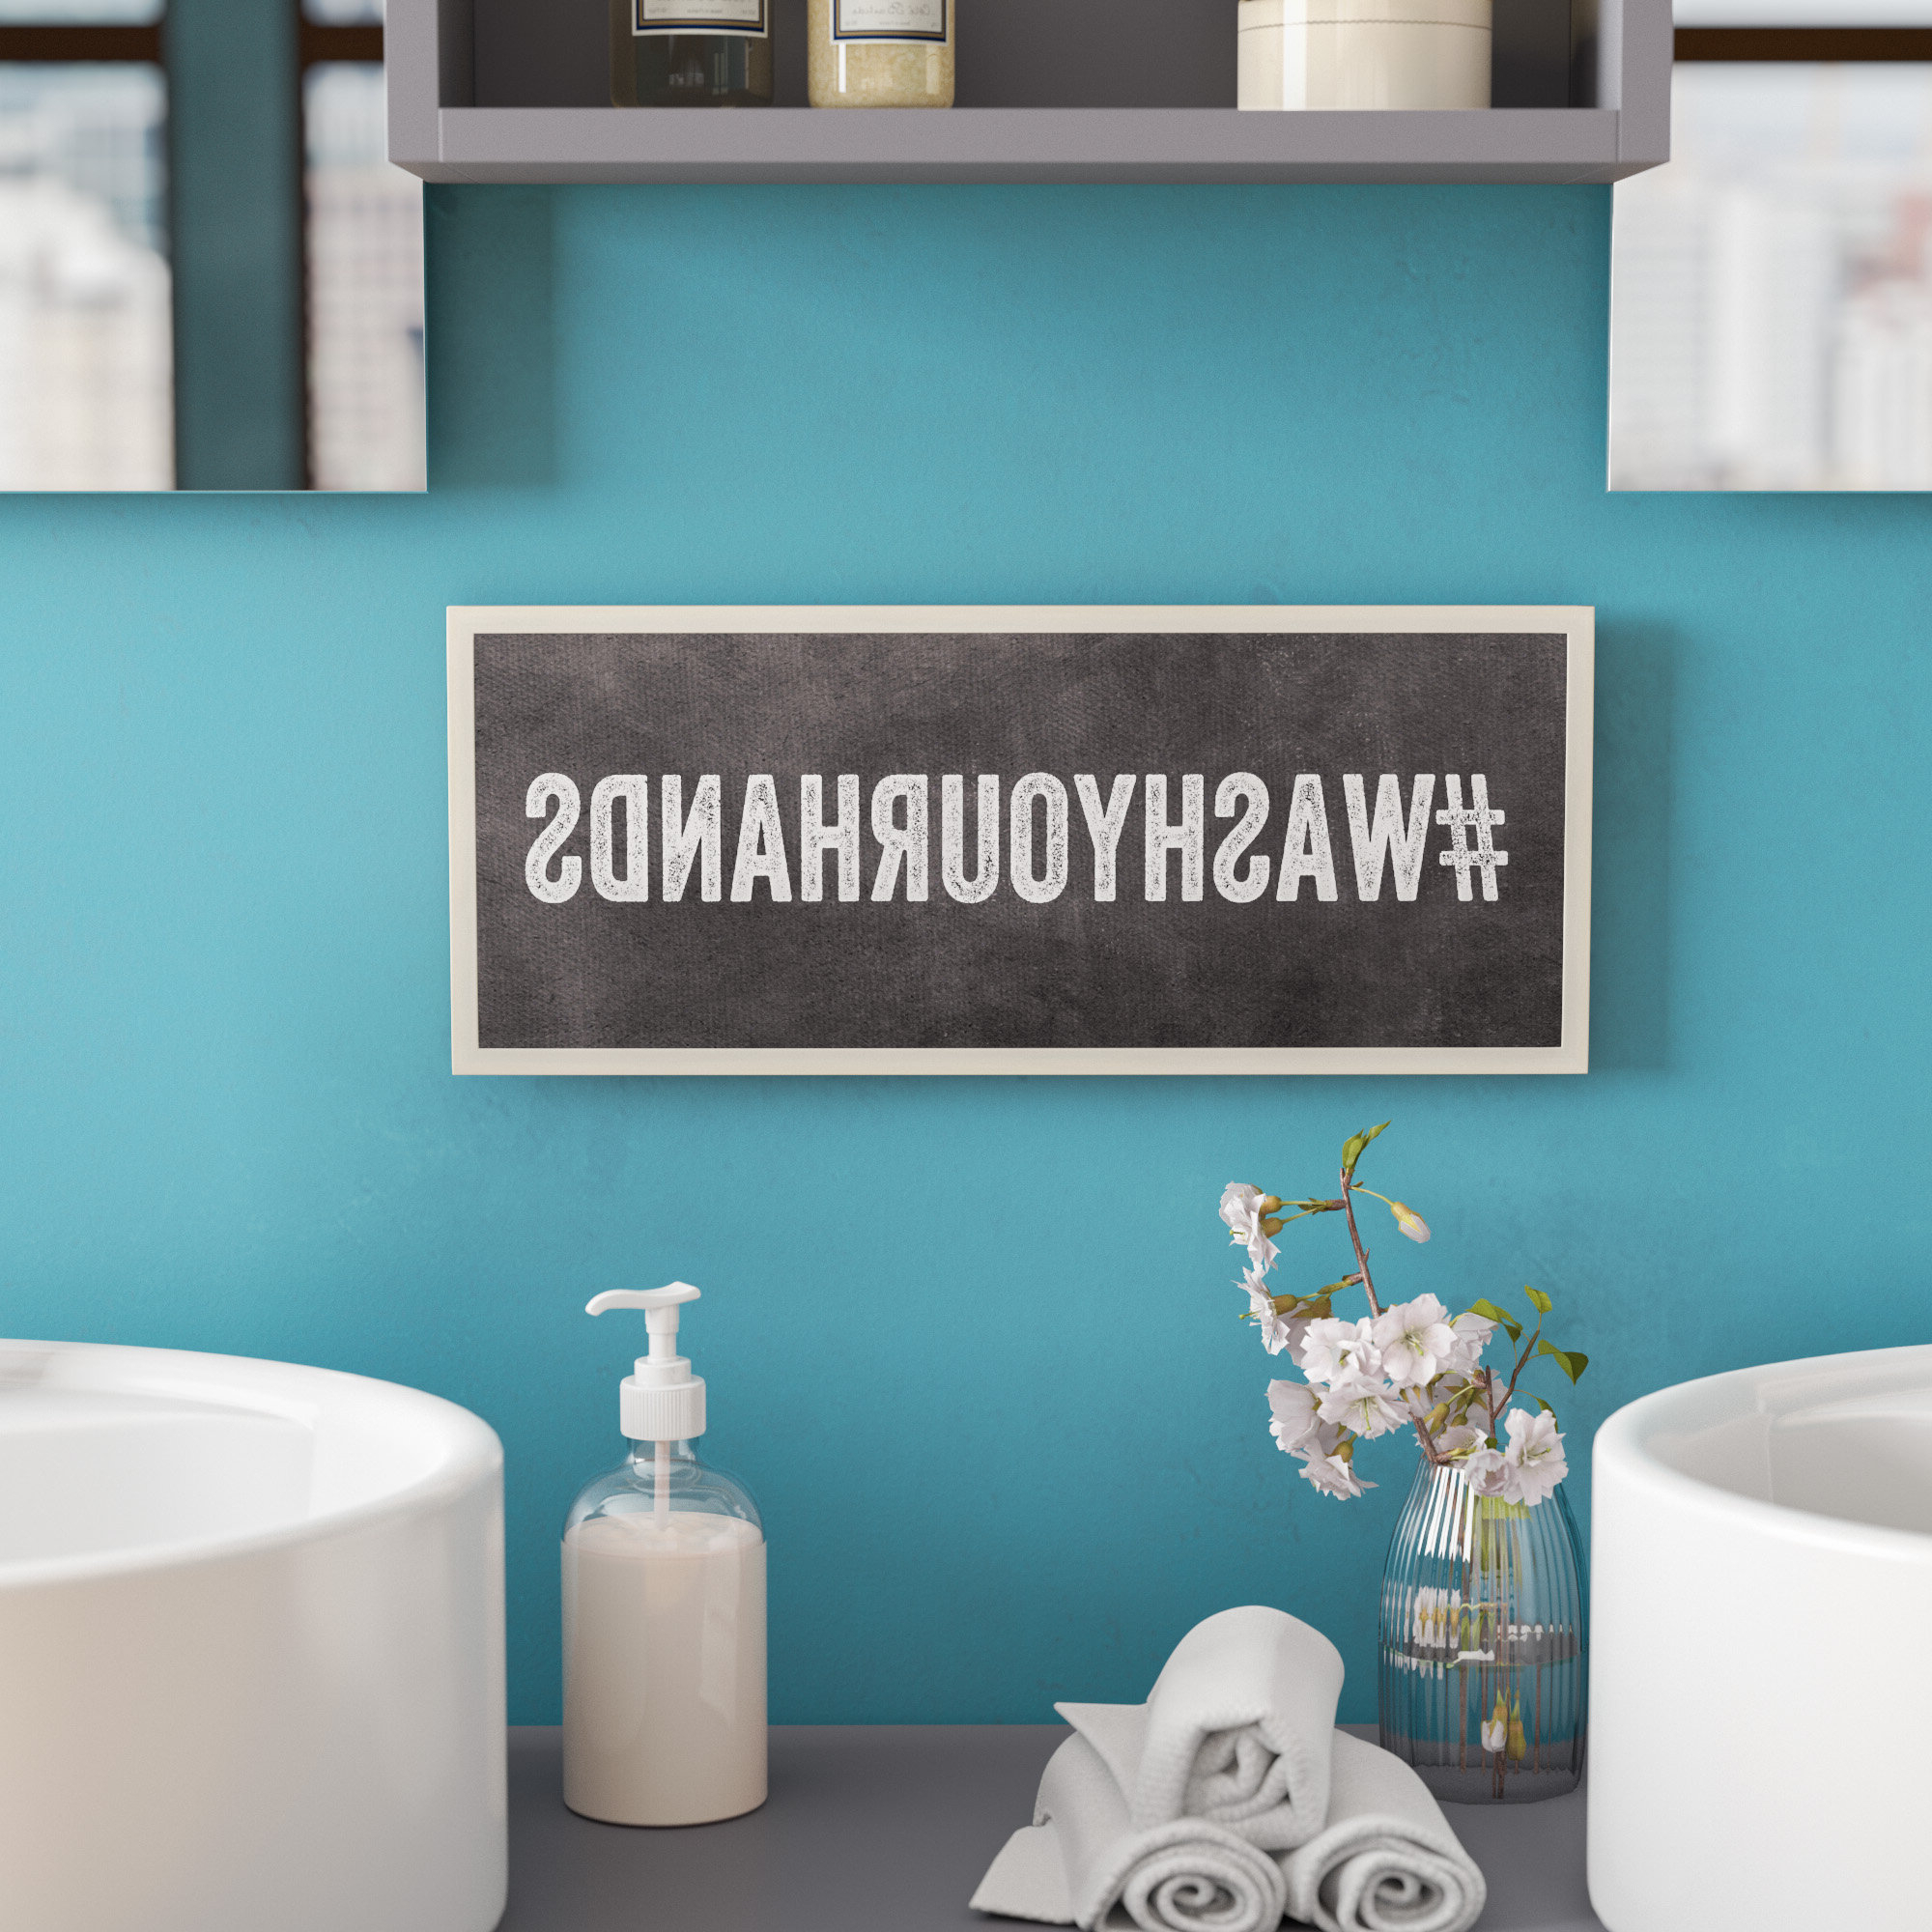 Featured Photo of Cheng Wash Your Hands Hashtag Bathroom Wall Plaque